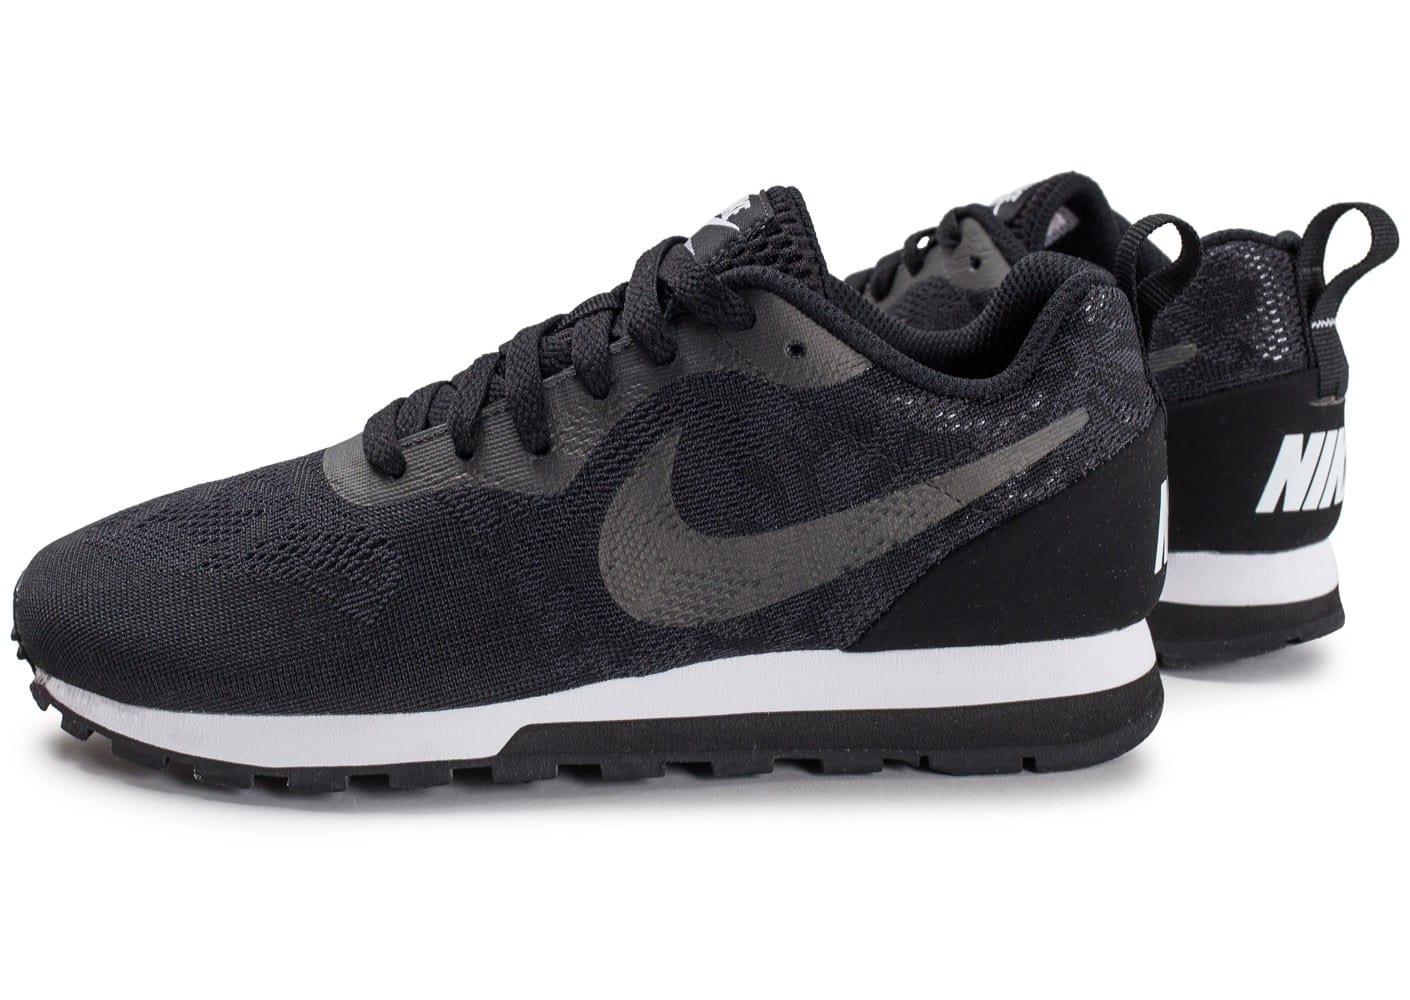 Nike MD Runner 2 Breathe noire Chaussures Baskets homme